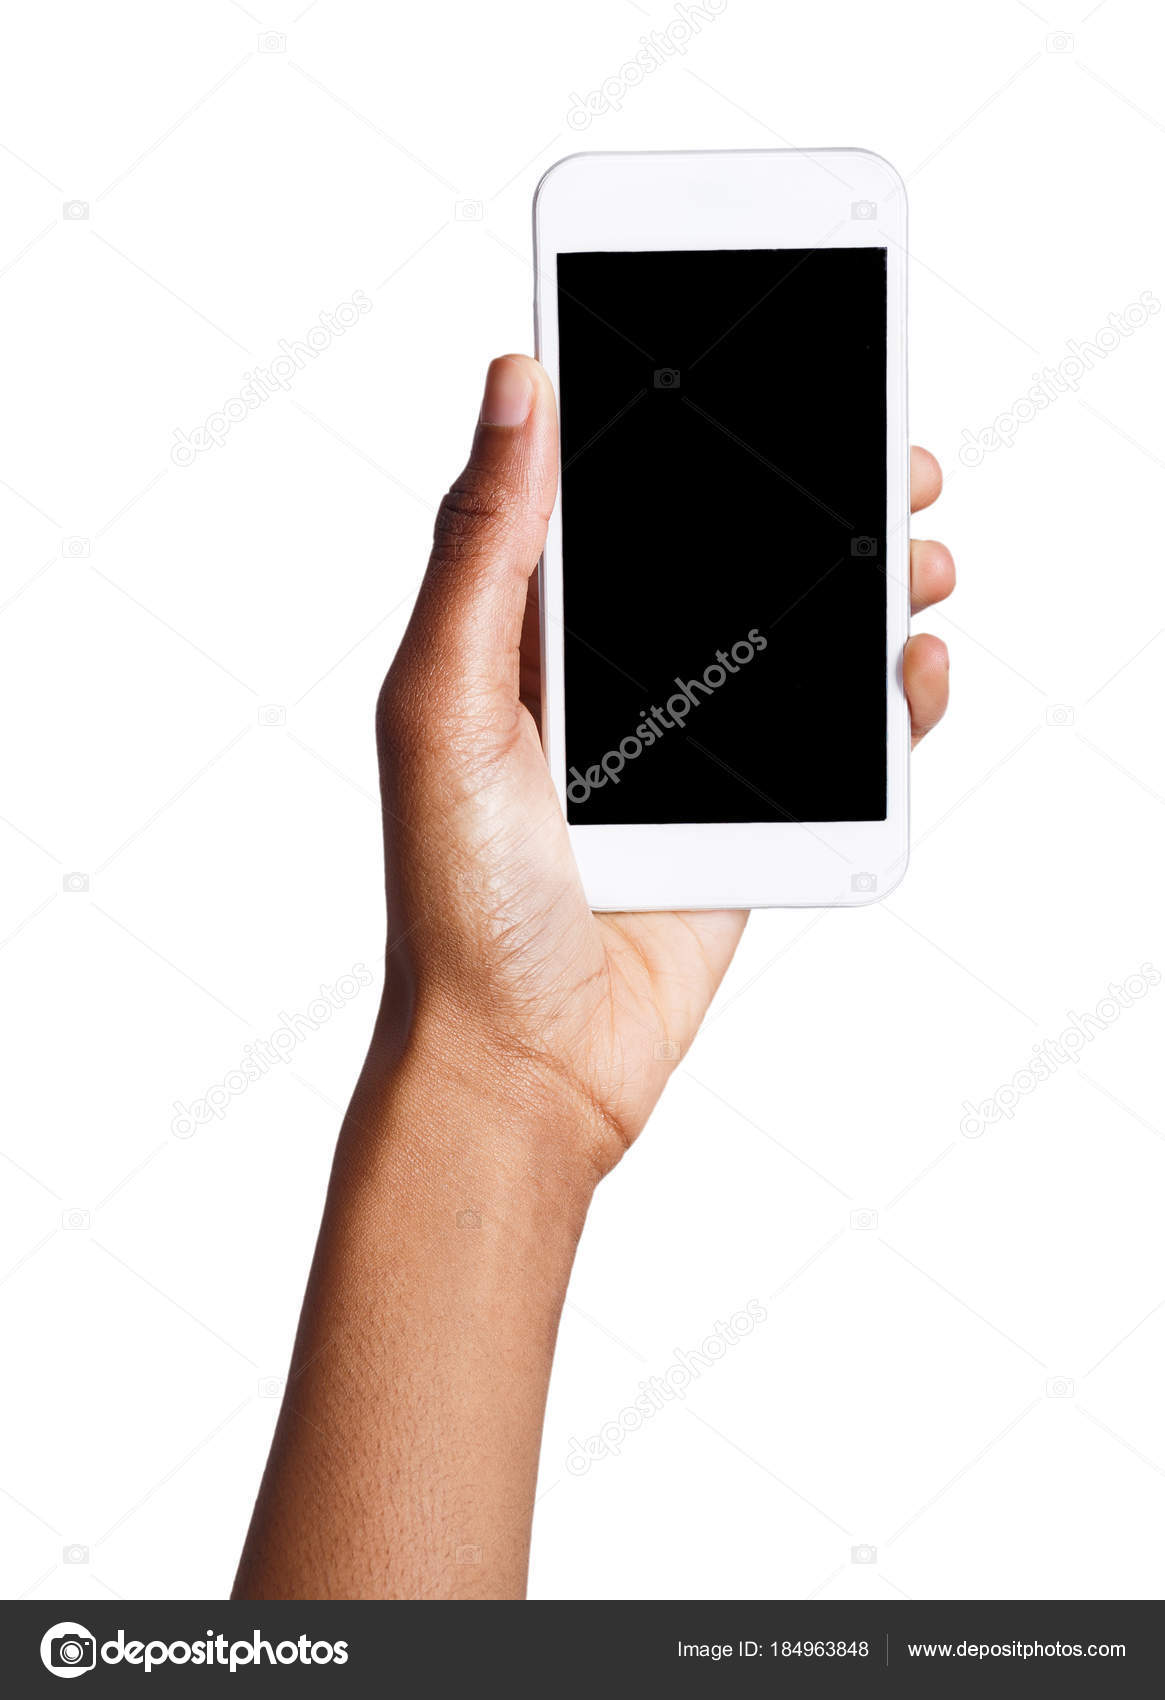 Black People Images, Stock Photos & Vectors | Shutterstock